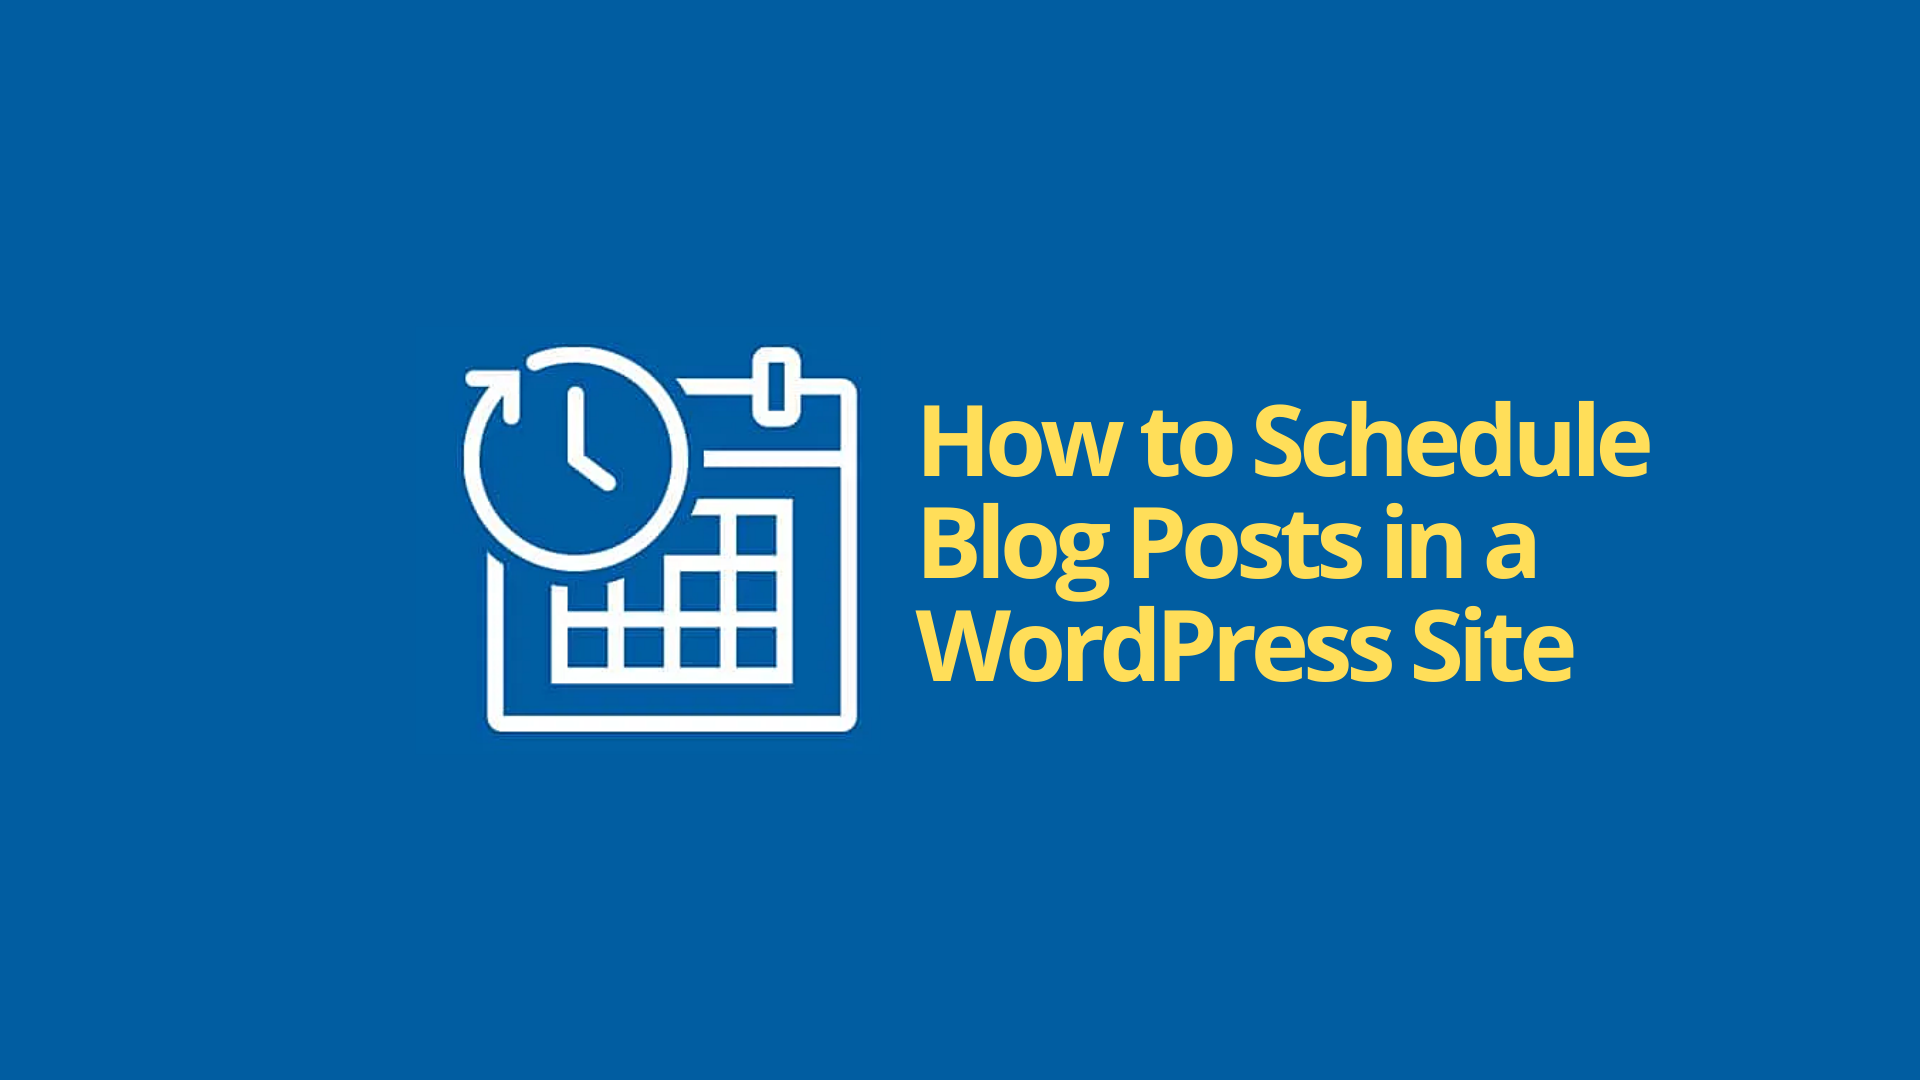 How to Schedule Blog Posts in WordPress